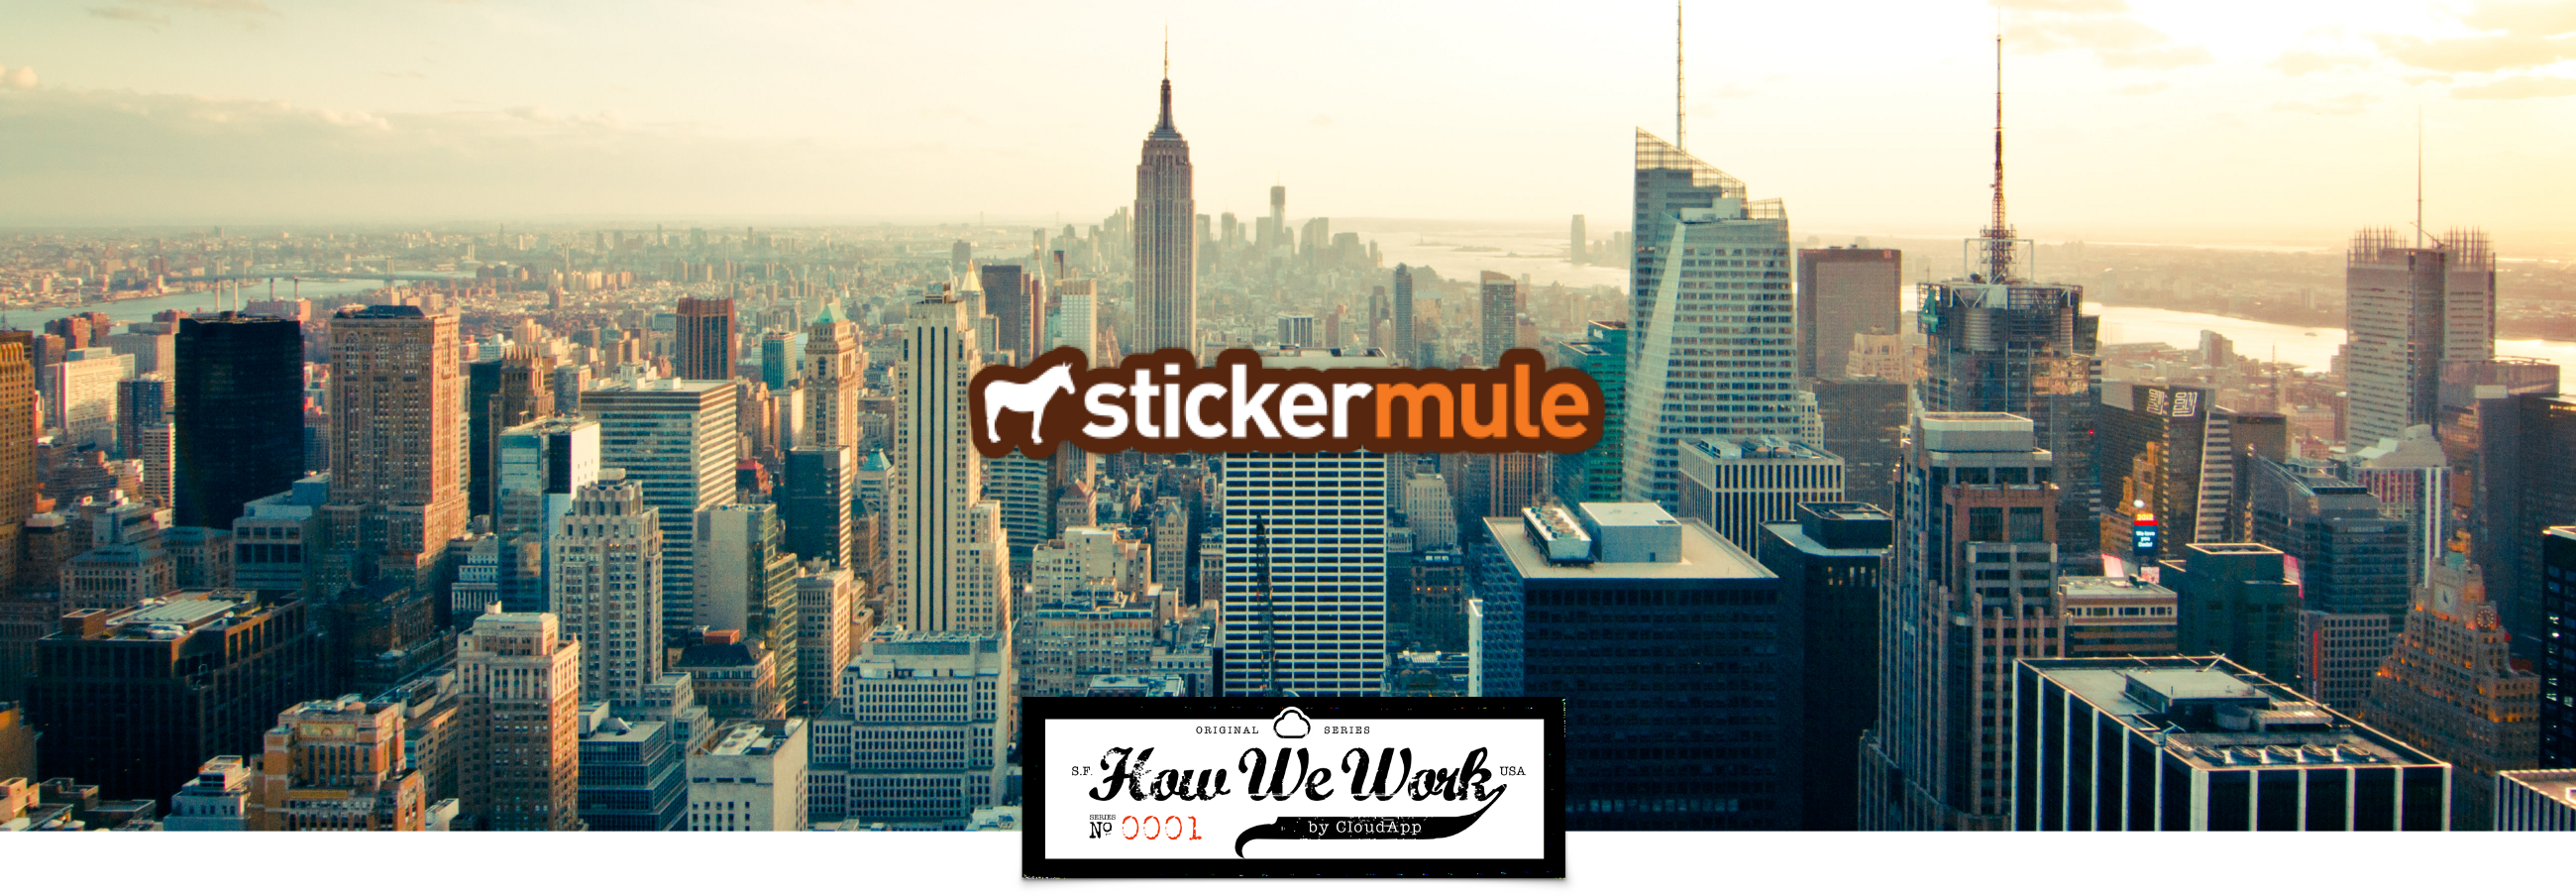 Founded in new york in 2010 anthony constantino of sticker mule set out with an ambitious vision to coat the world in custom stickers whether its new